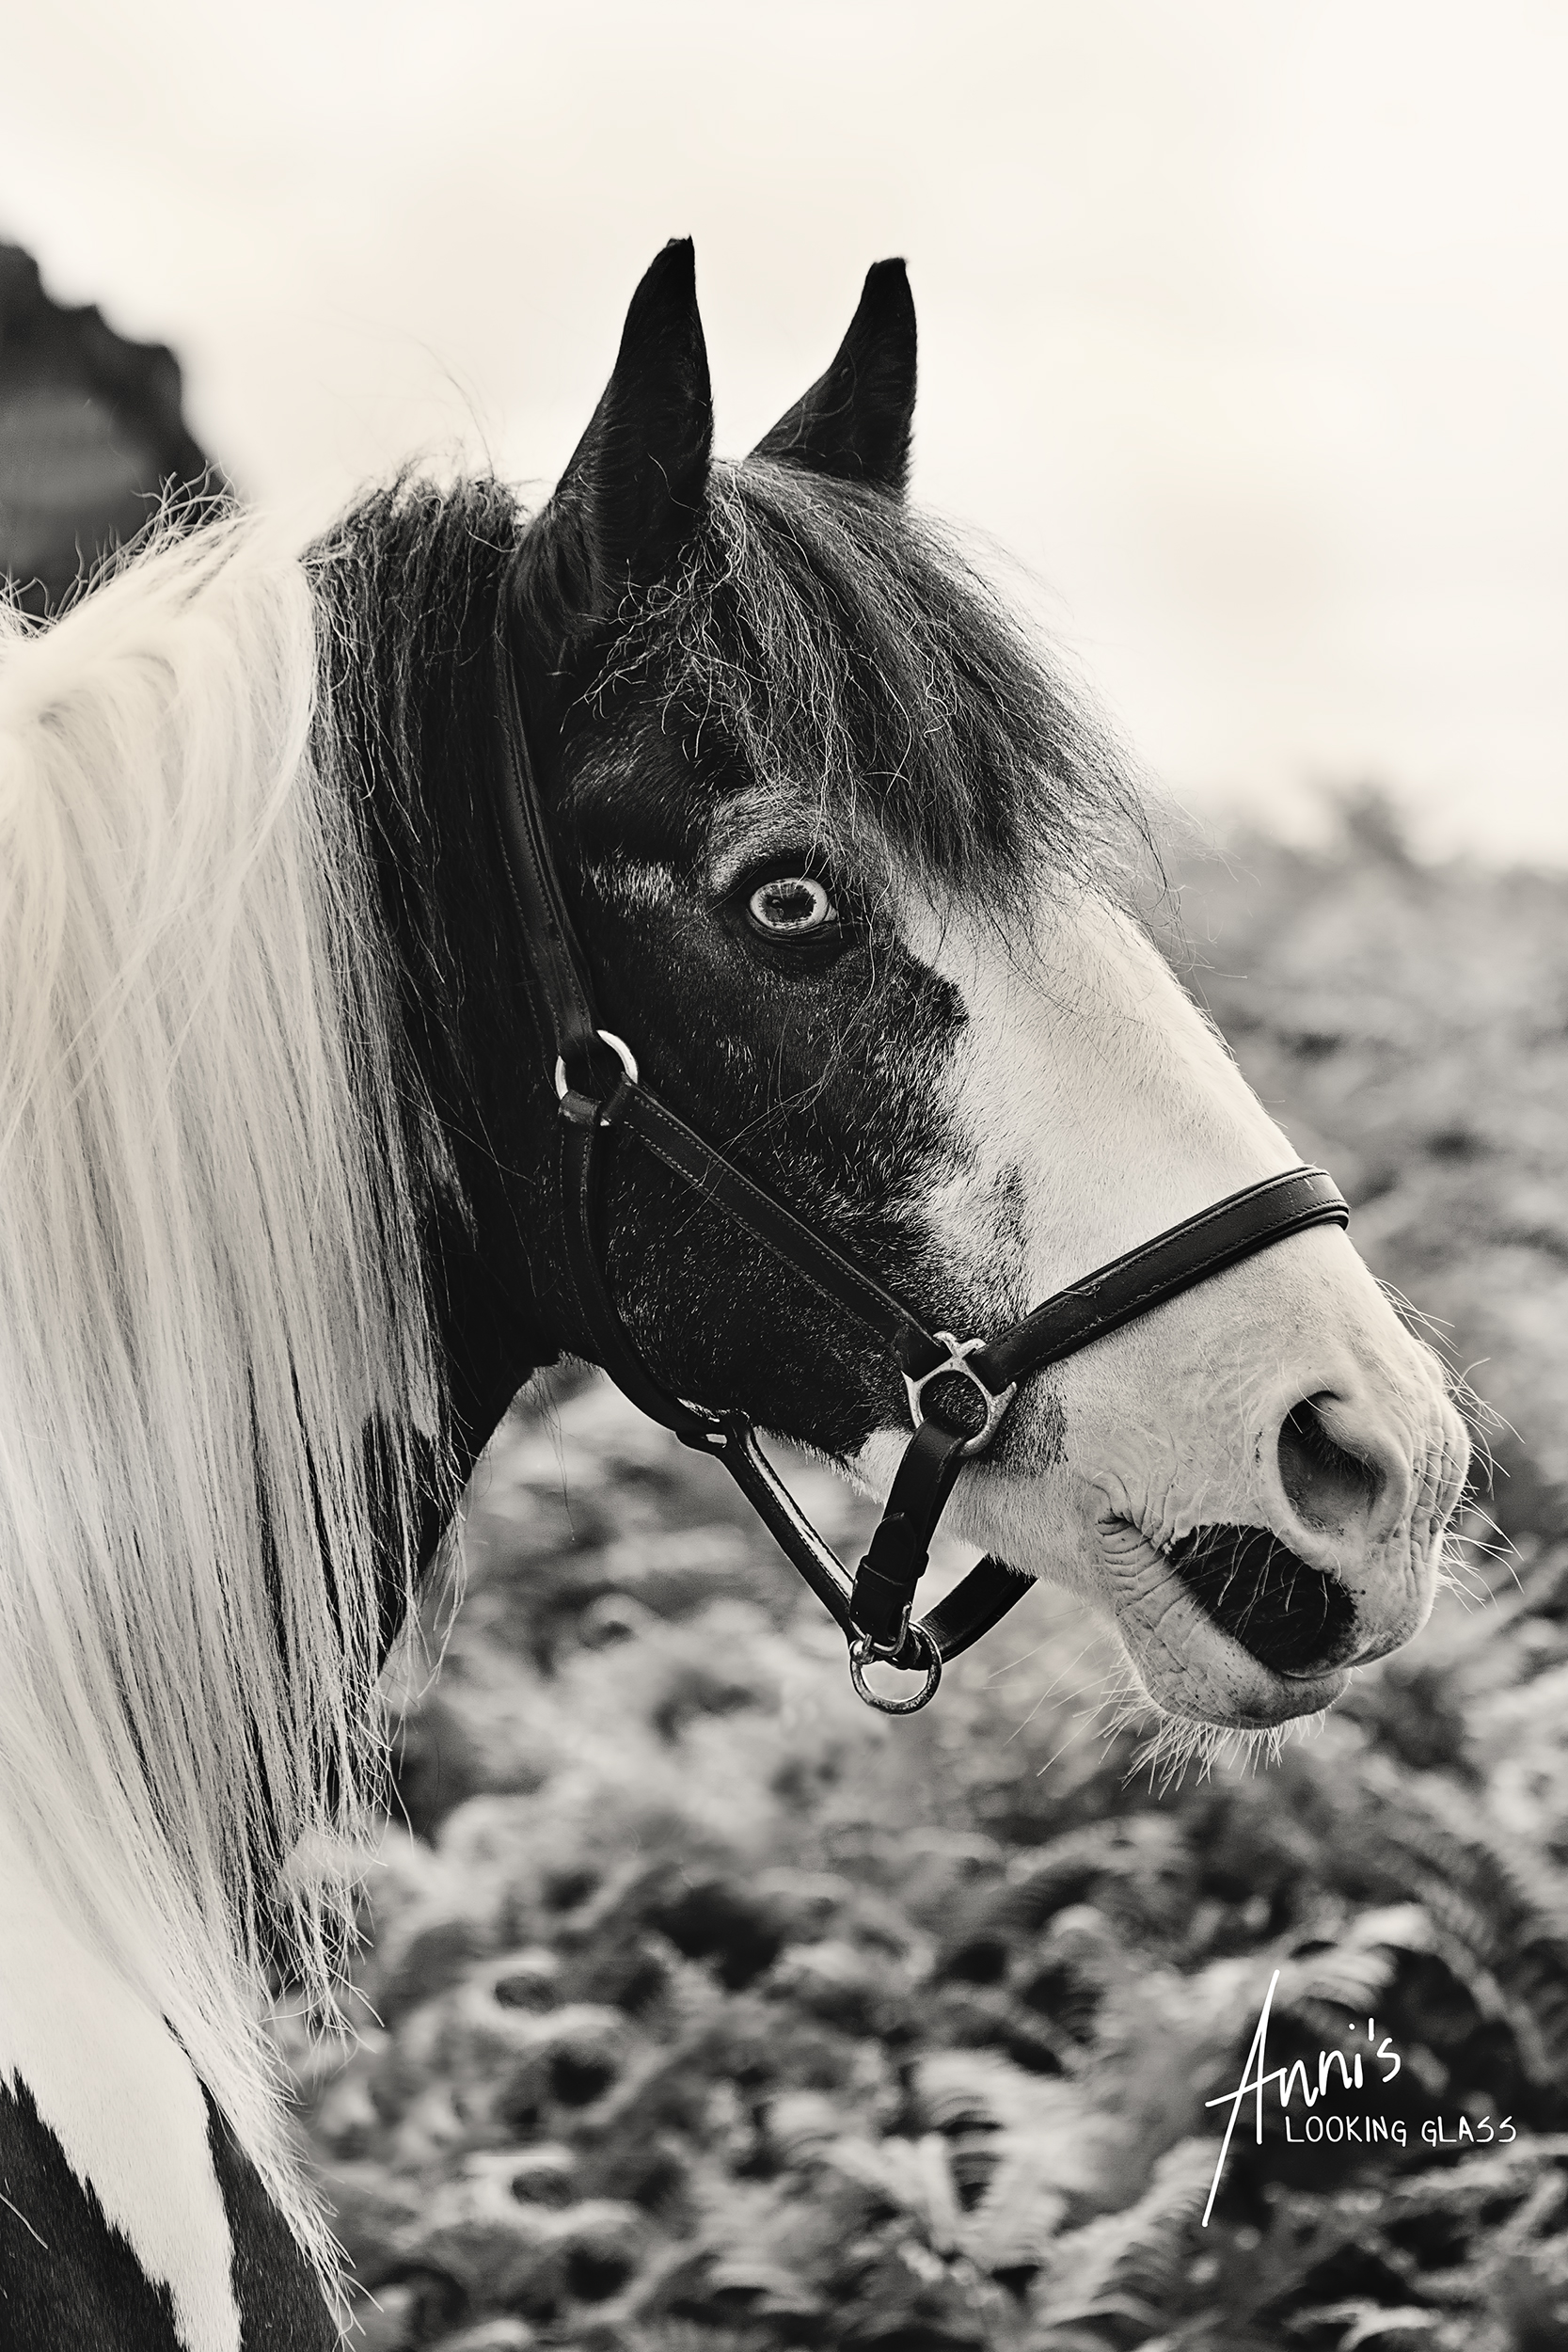 Bradgate Park, Newton Linford, Leicestershire: Monochrome portrait of a piebald gypsy vanner horse. 2nd July, 2017